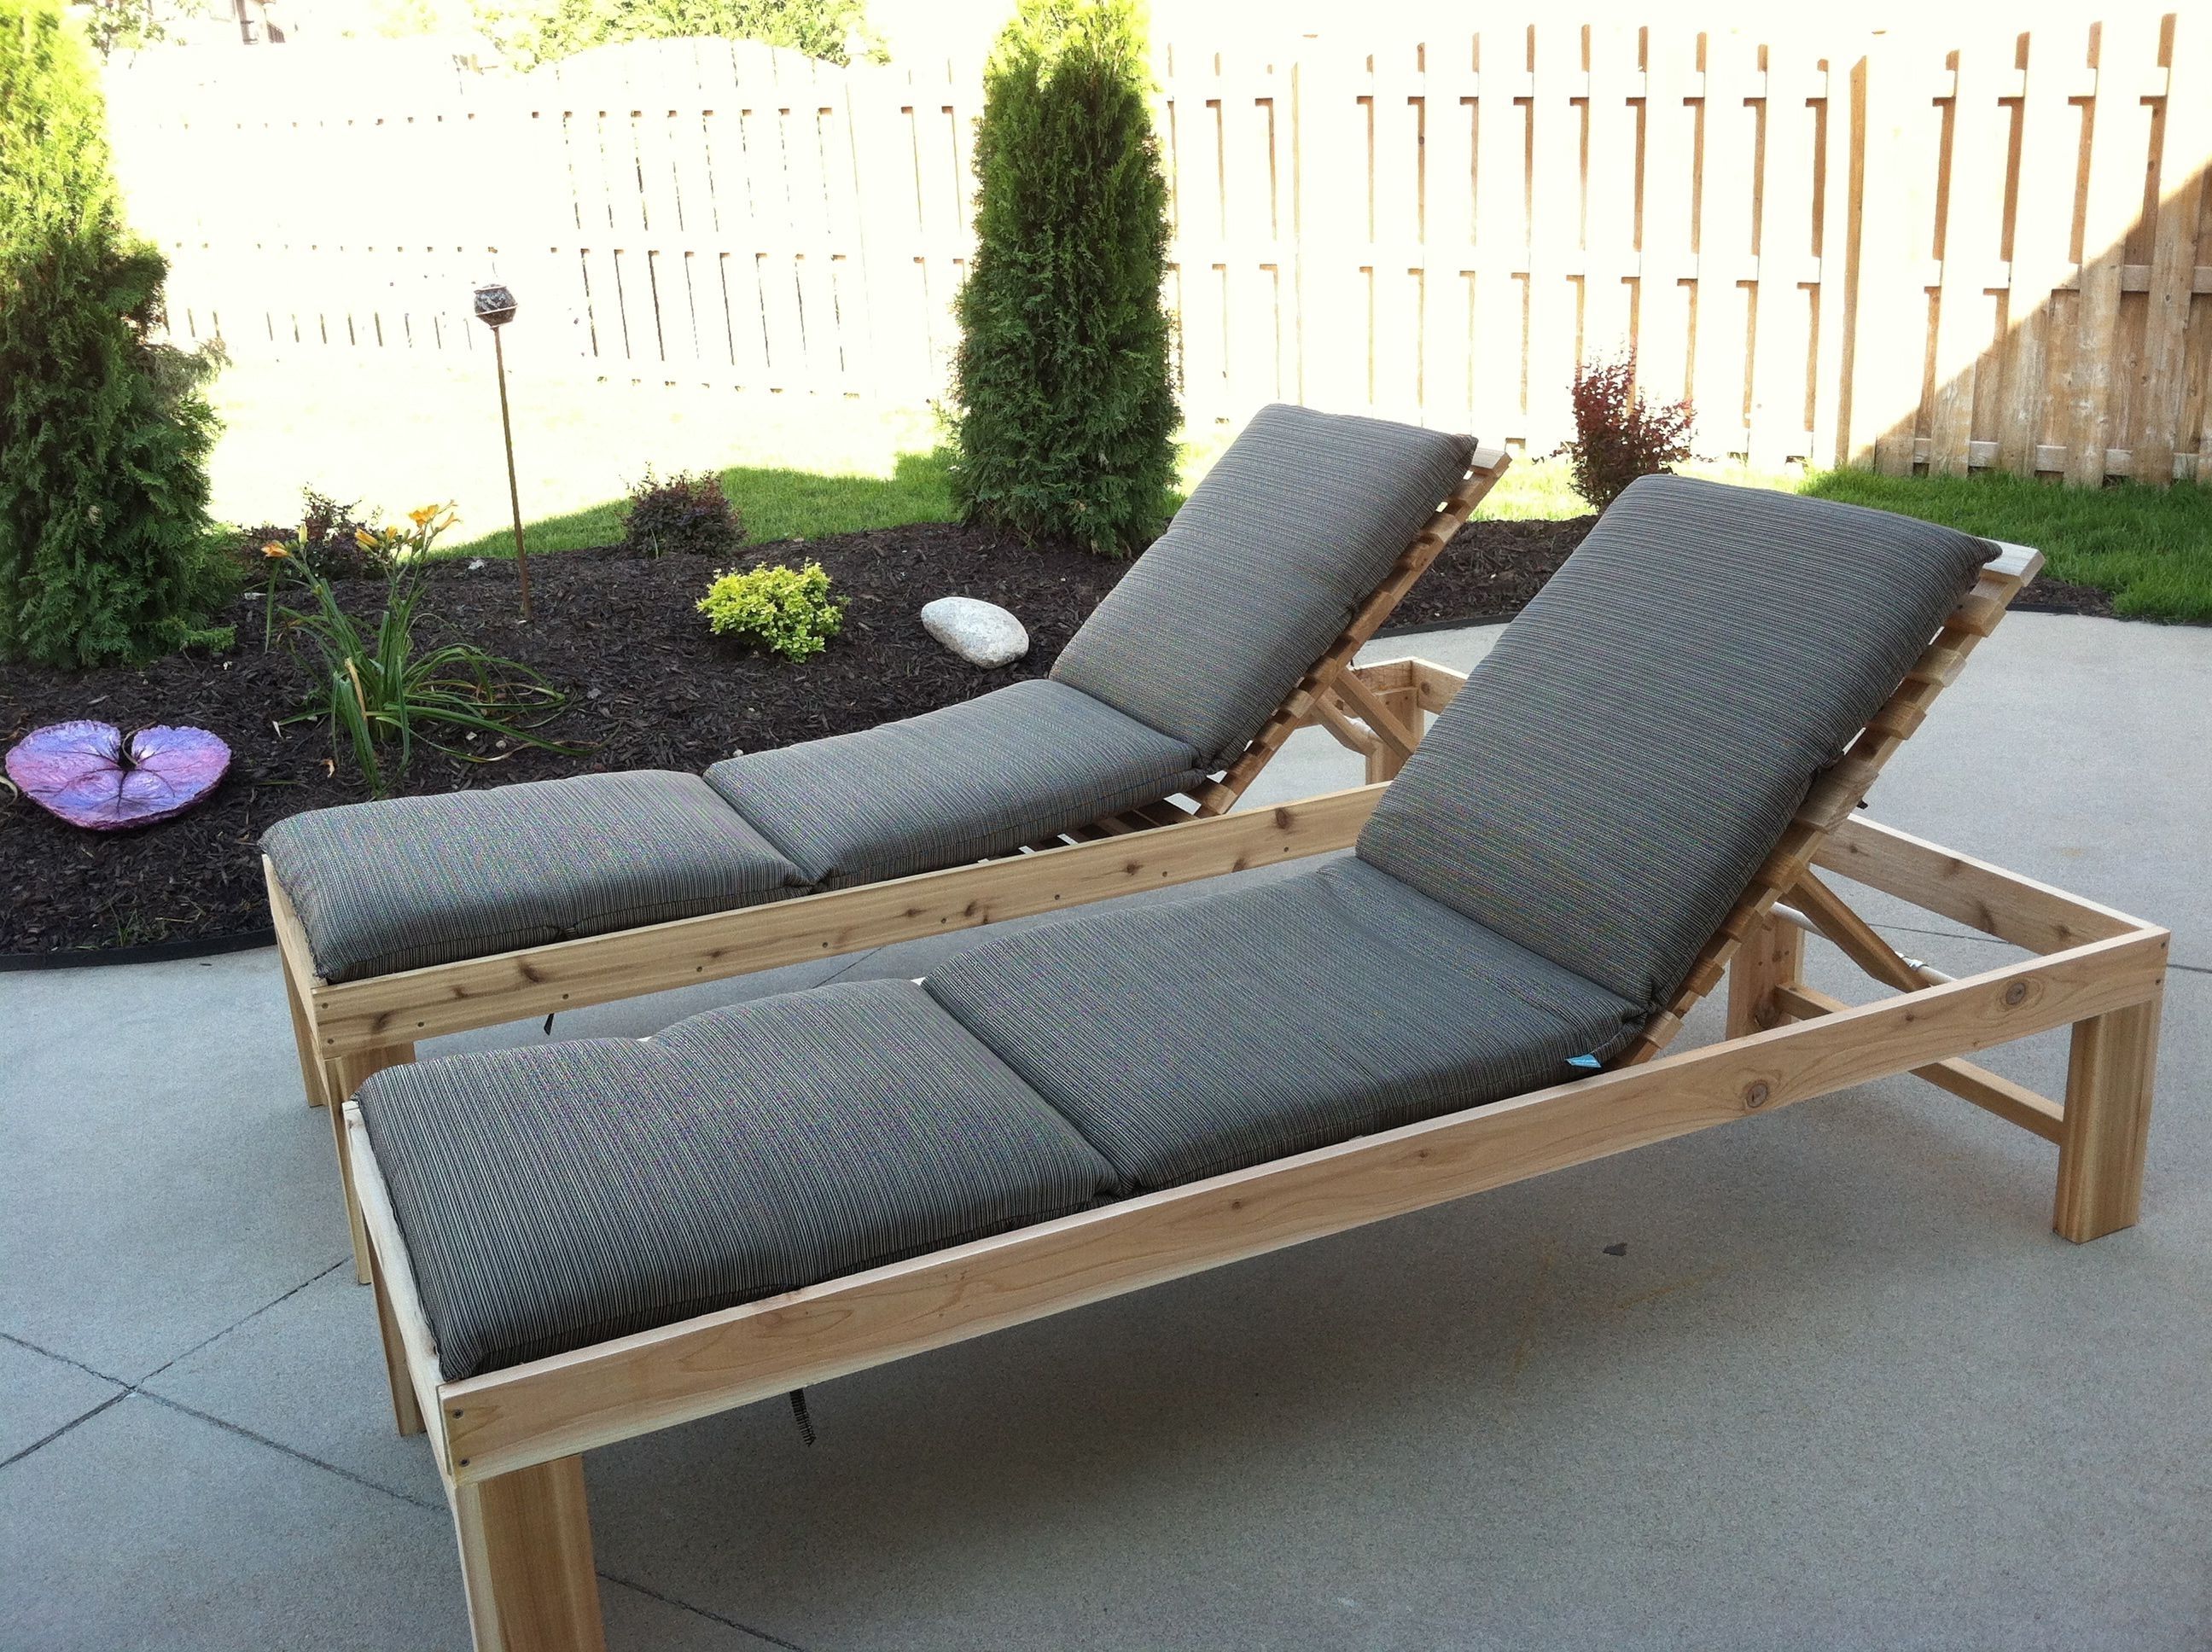 Outdoor Chaise Lounge – Diy Projects In Diy Chaise Lounges (View 2 of 15)